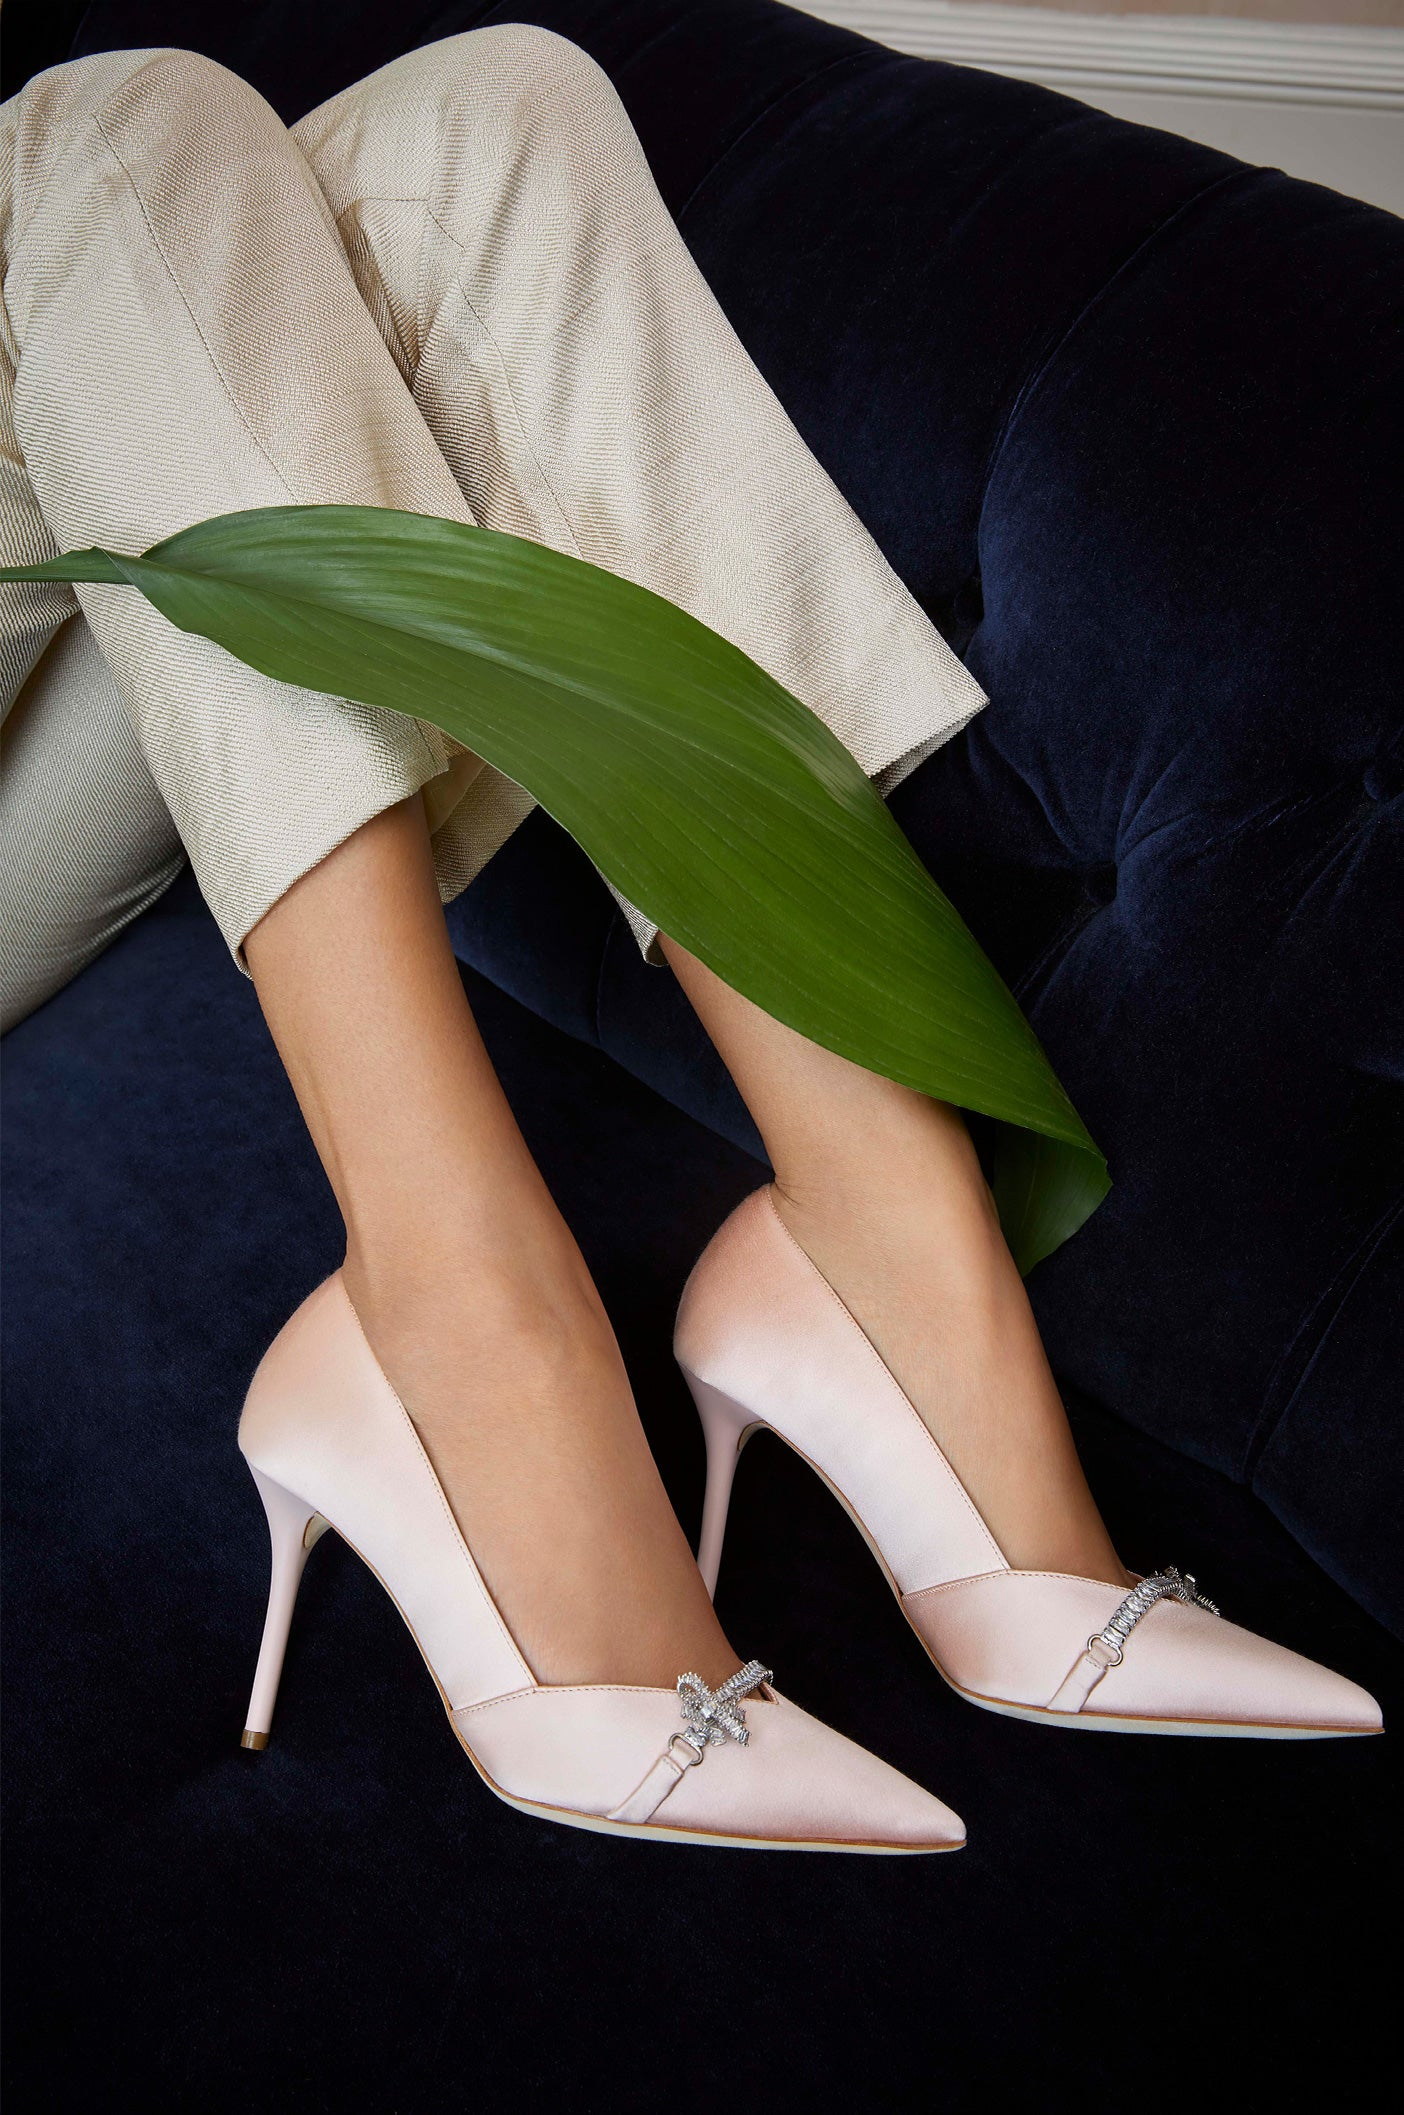 Malone Souliers SS20 Lookbook Image